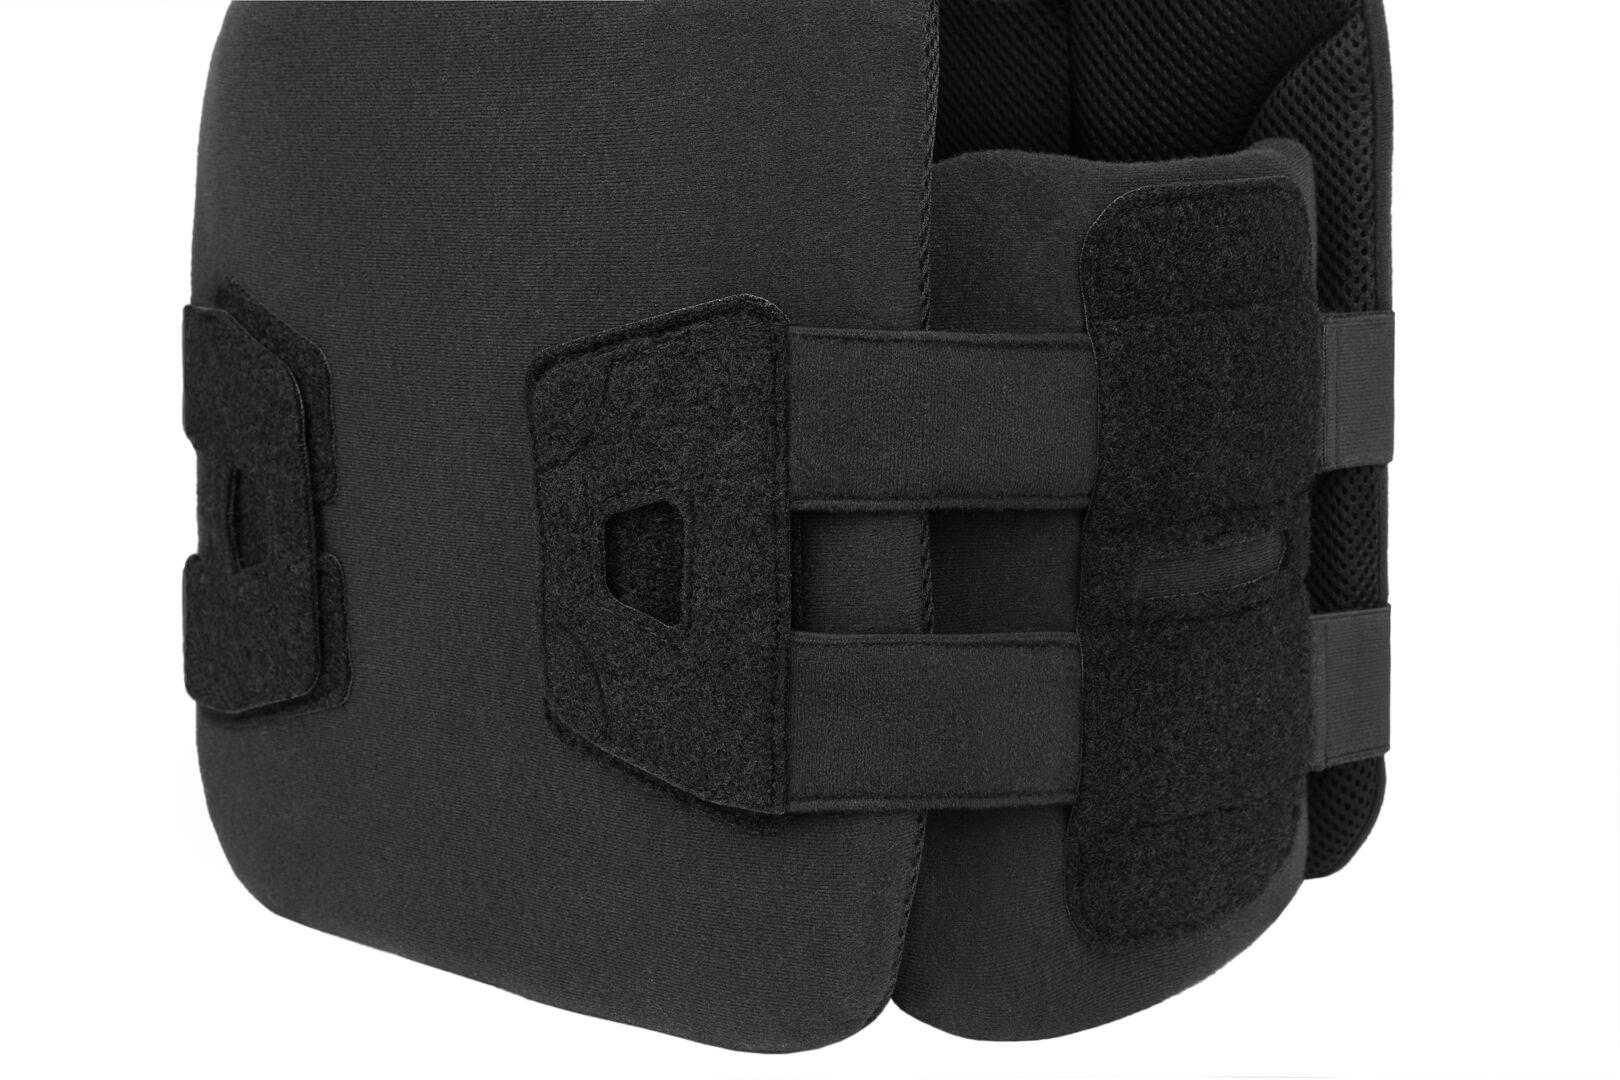 MCVF™ Modular Concealable Vest Female